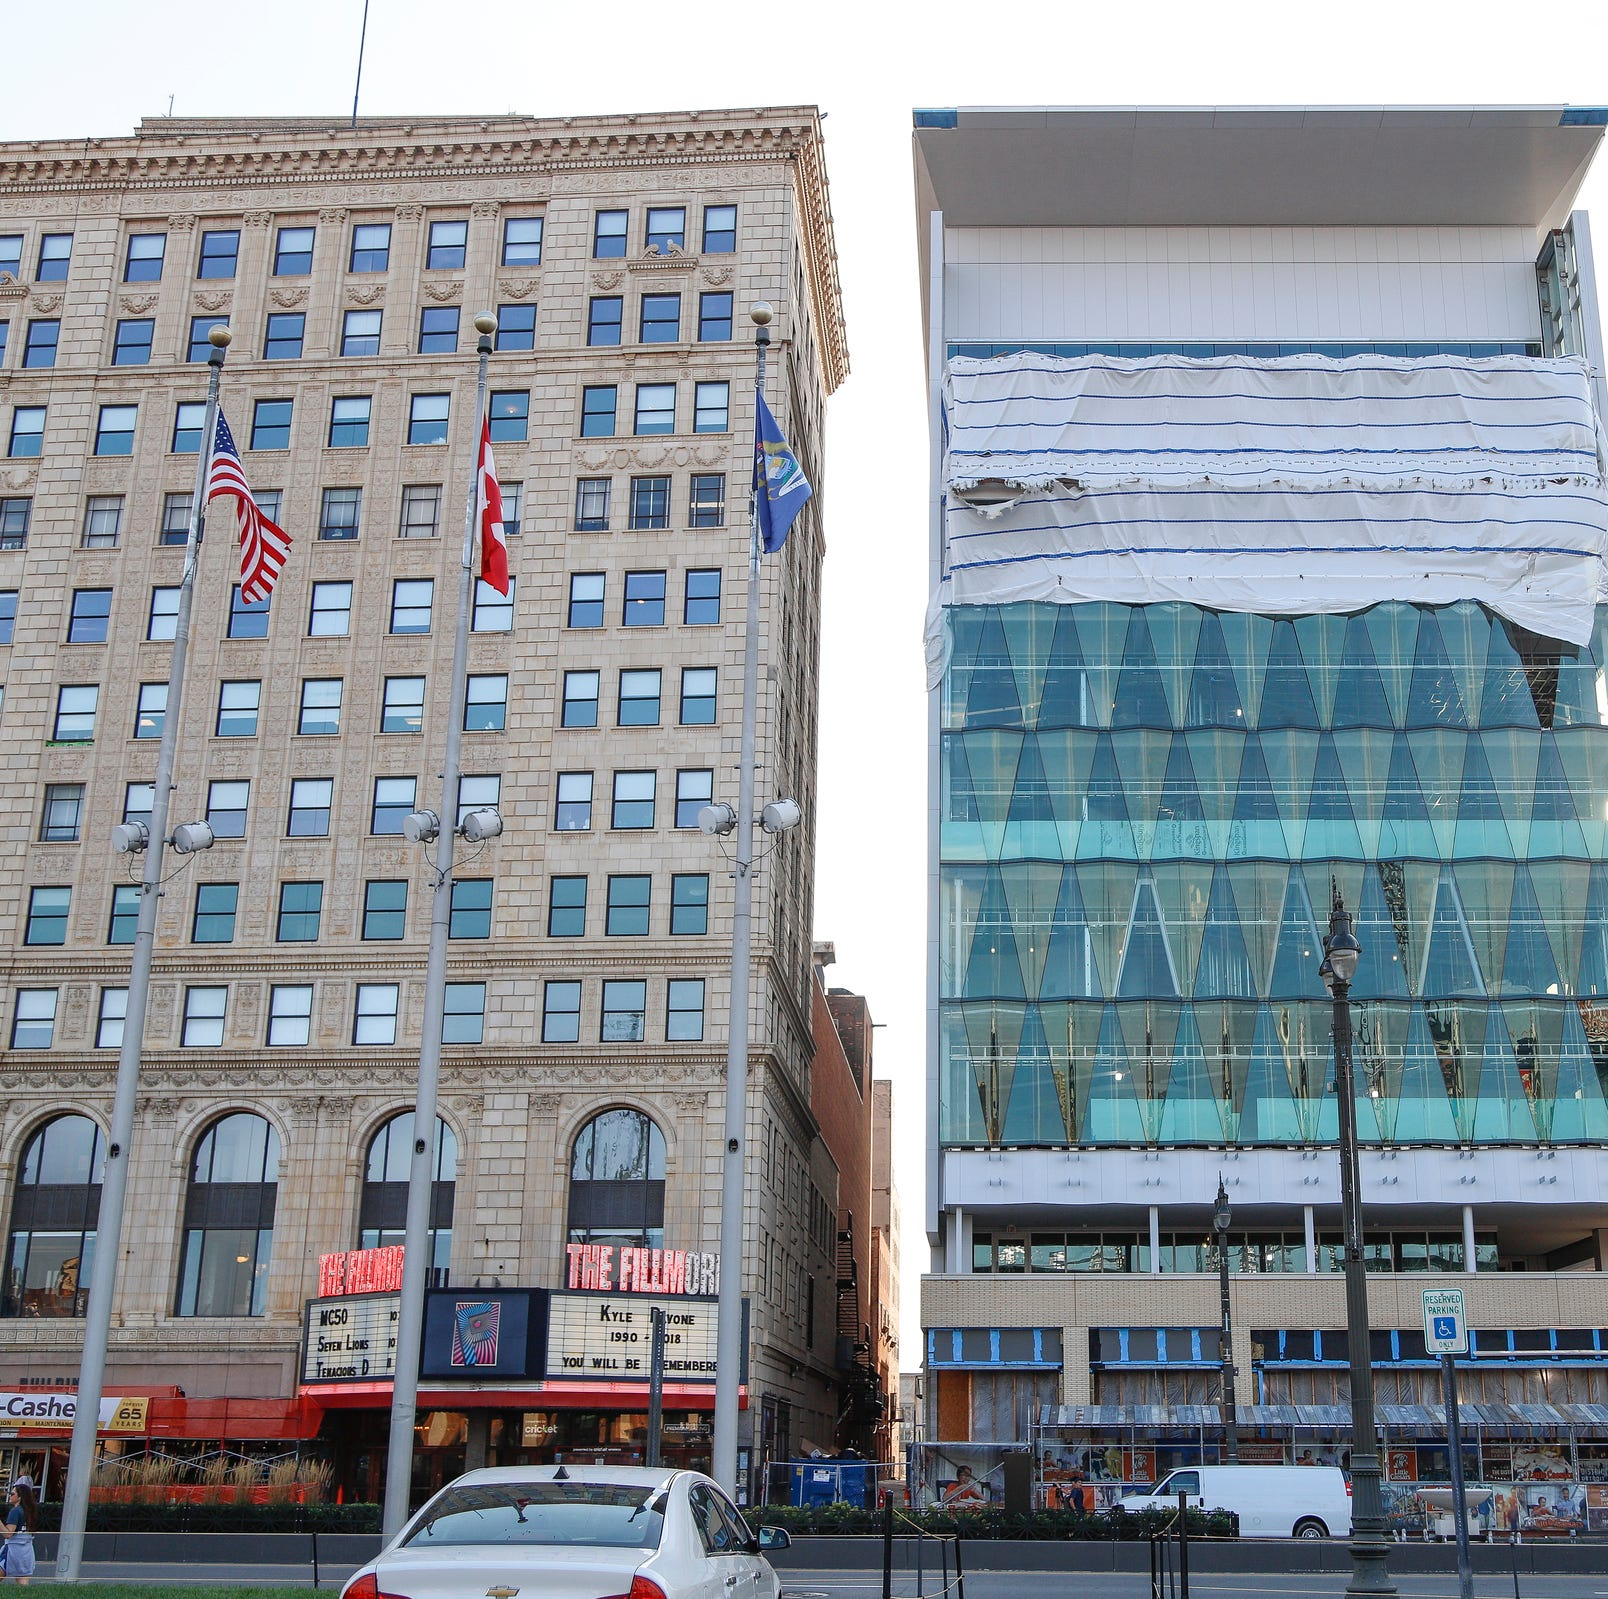 Those pizza-slice windows may be delaying Little Caesars HQ opening